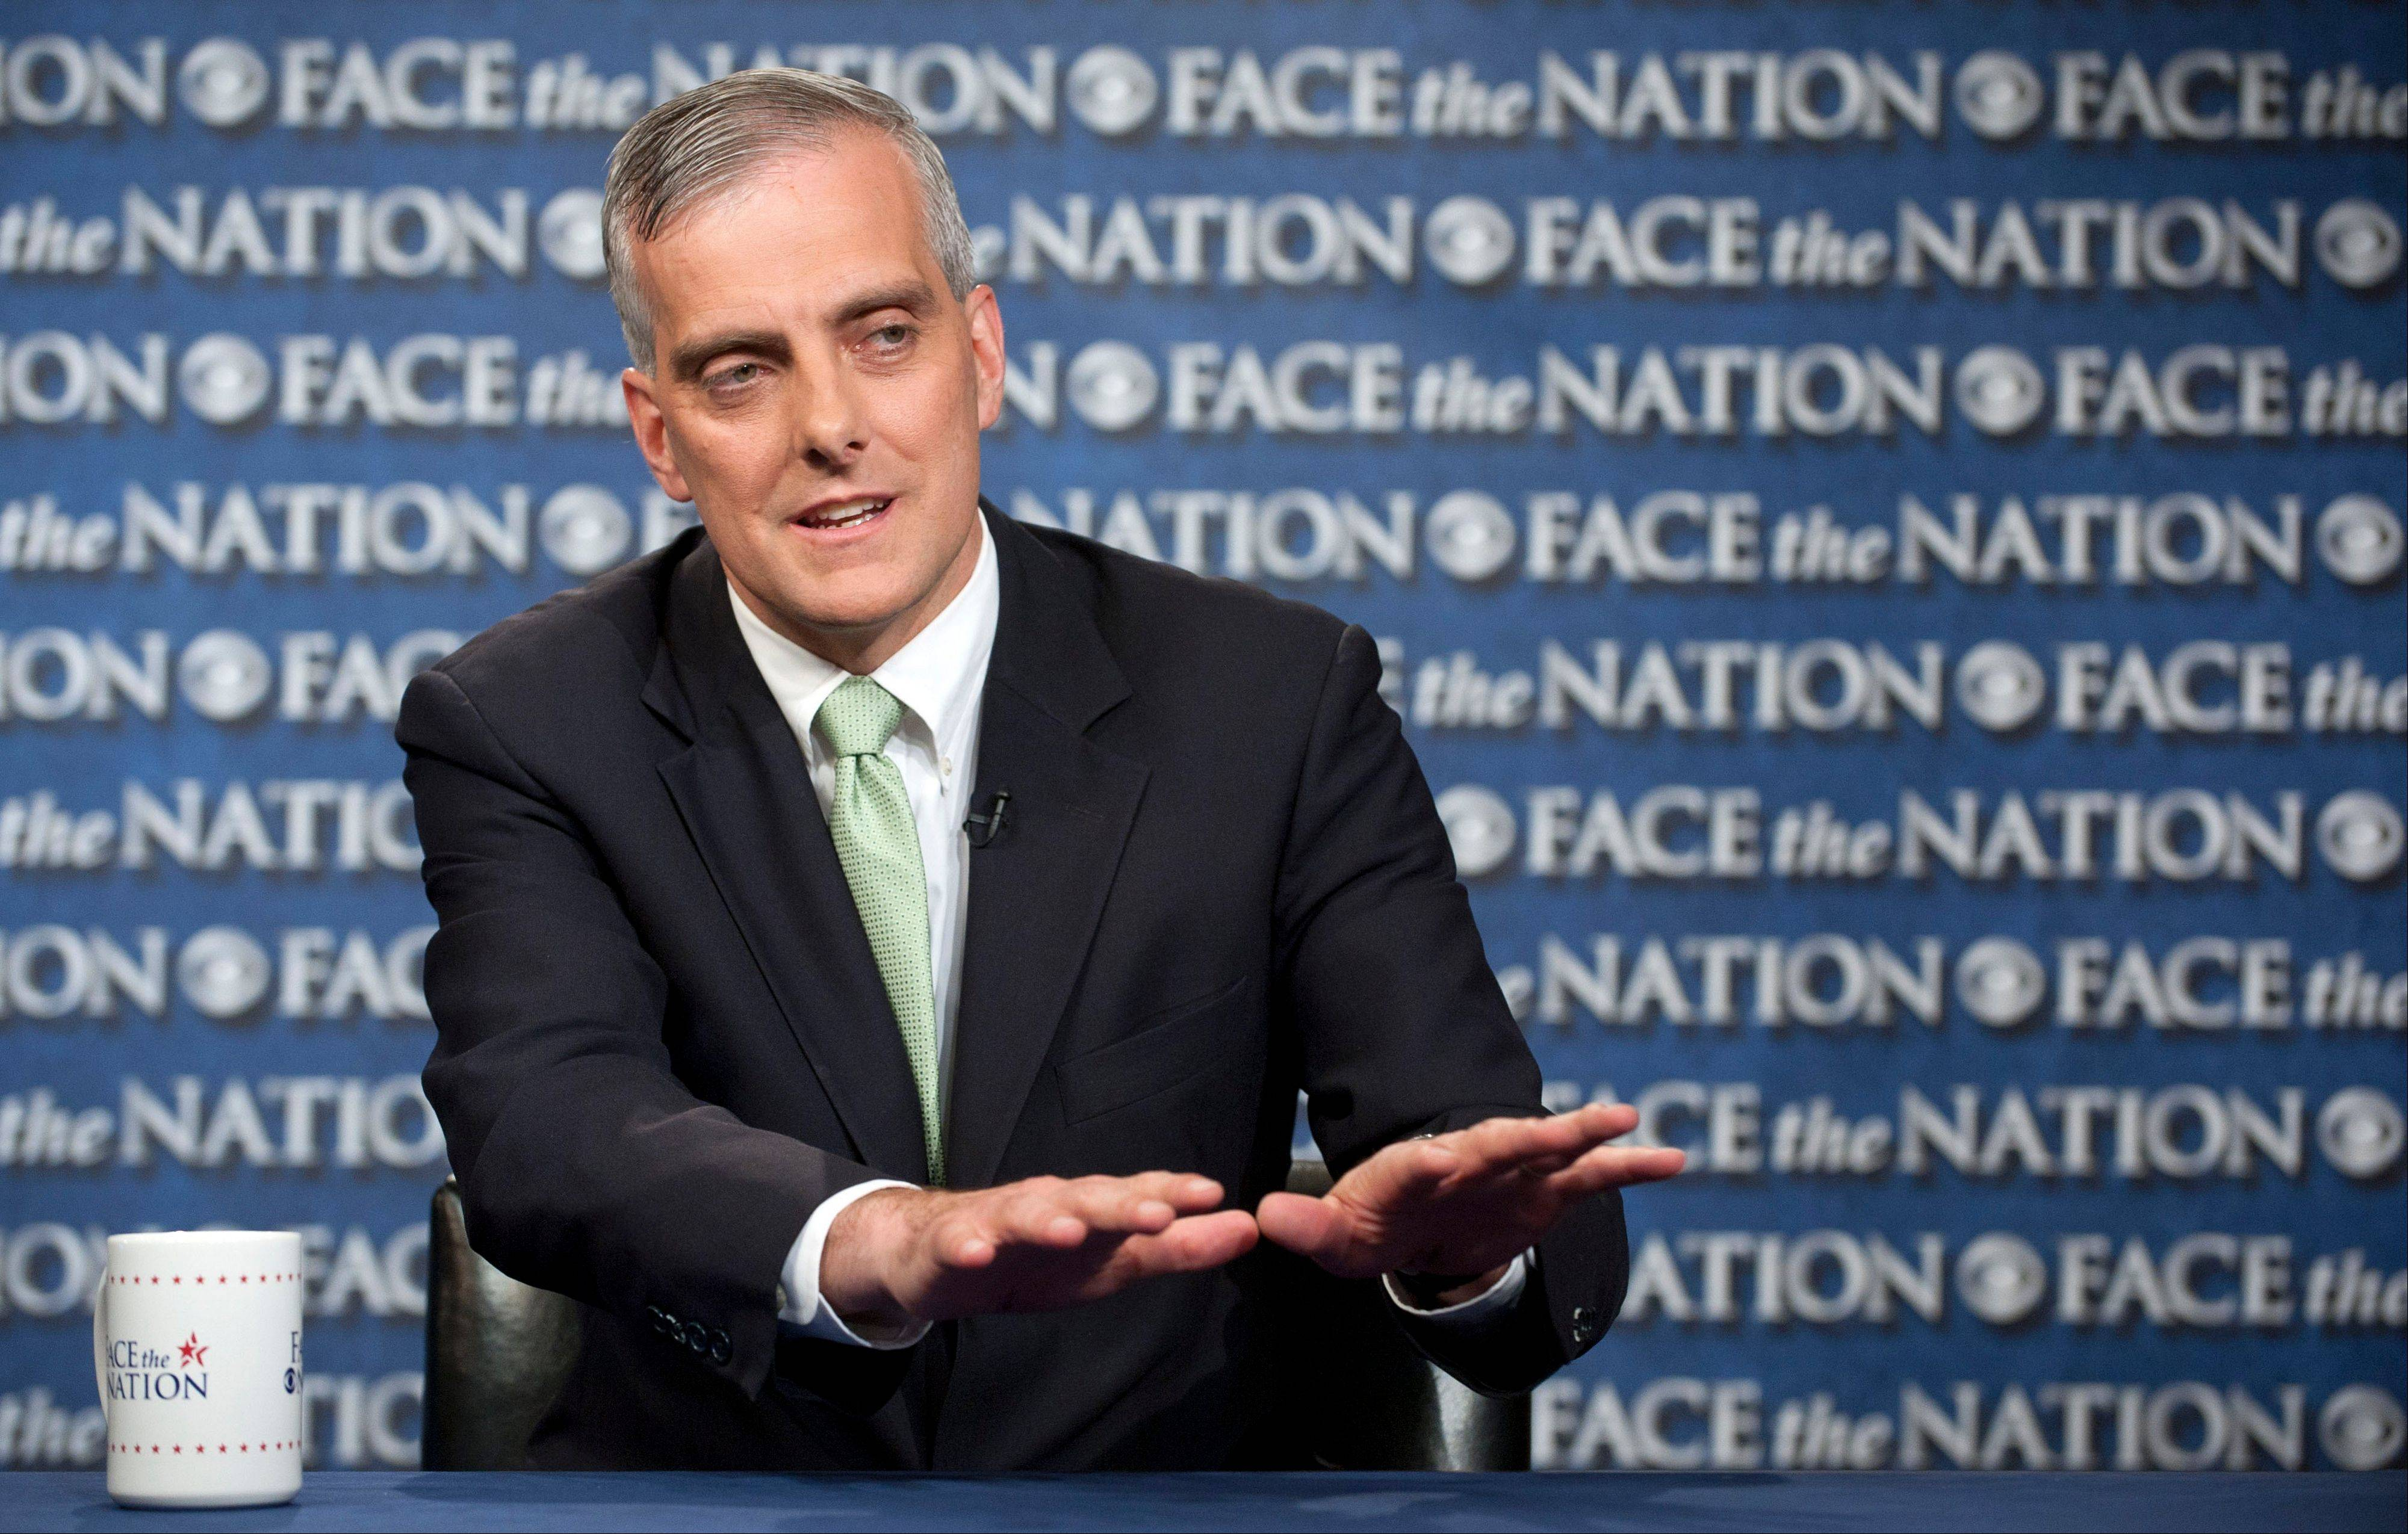 "White House Chief of Staff Denis McDonough, speaking on CBS's ""Face the Nation"" Sunday, said the government's reliance on data collection from both Americans and foreign nationals was constitutional and carefully overseen by executive, legislative and court authorities."